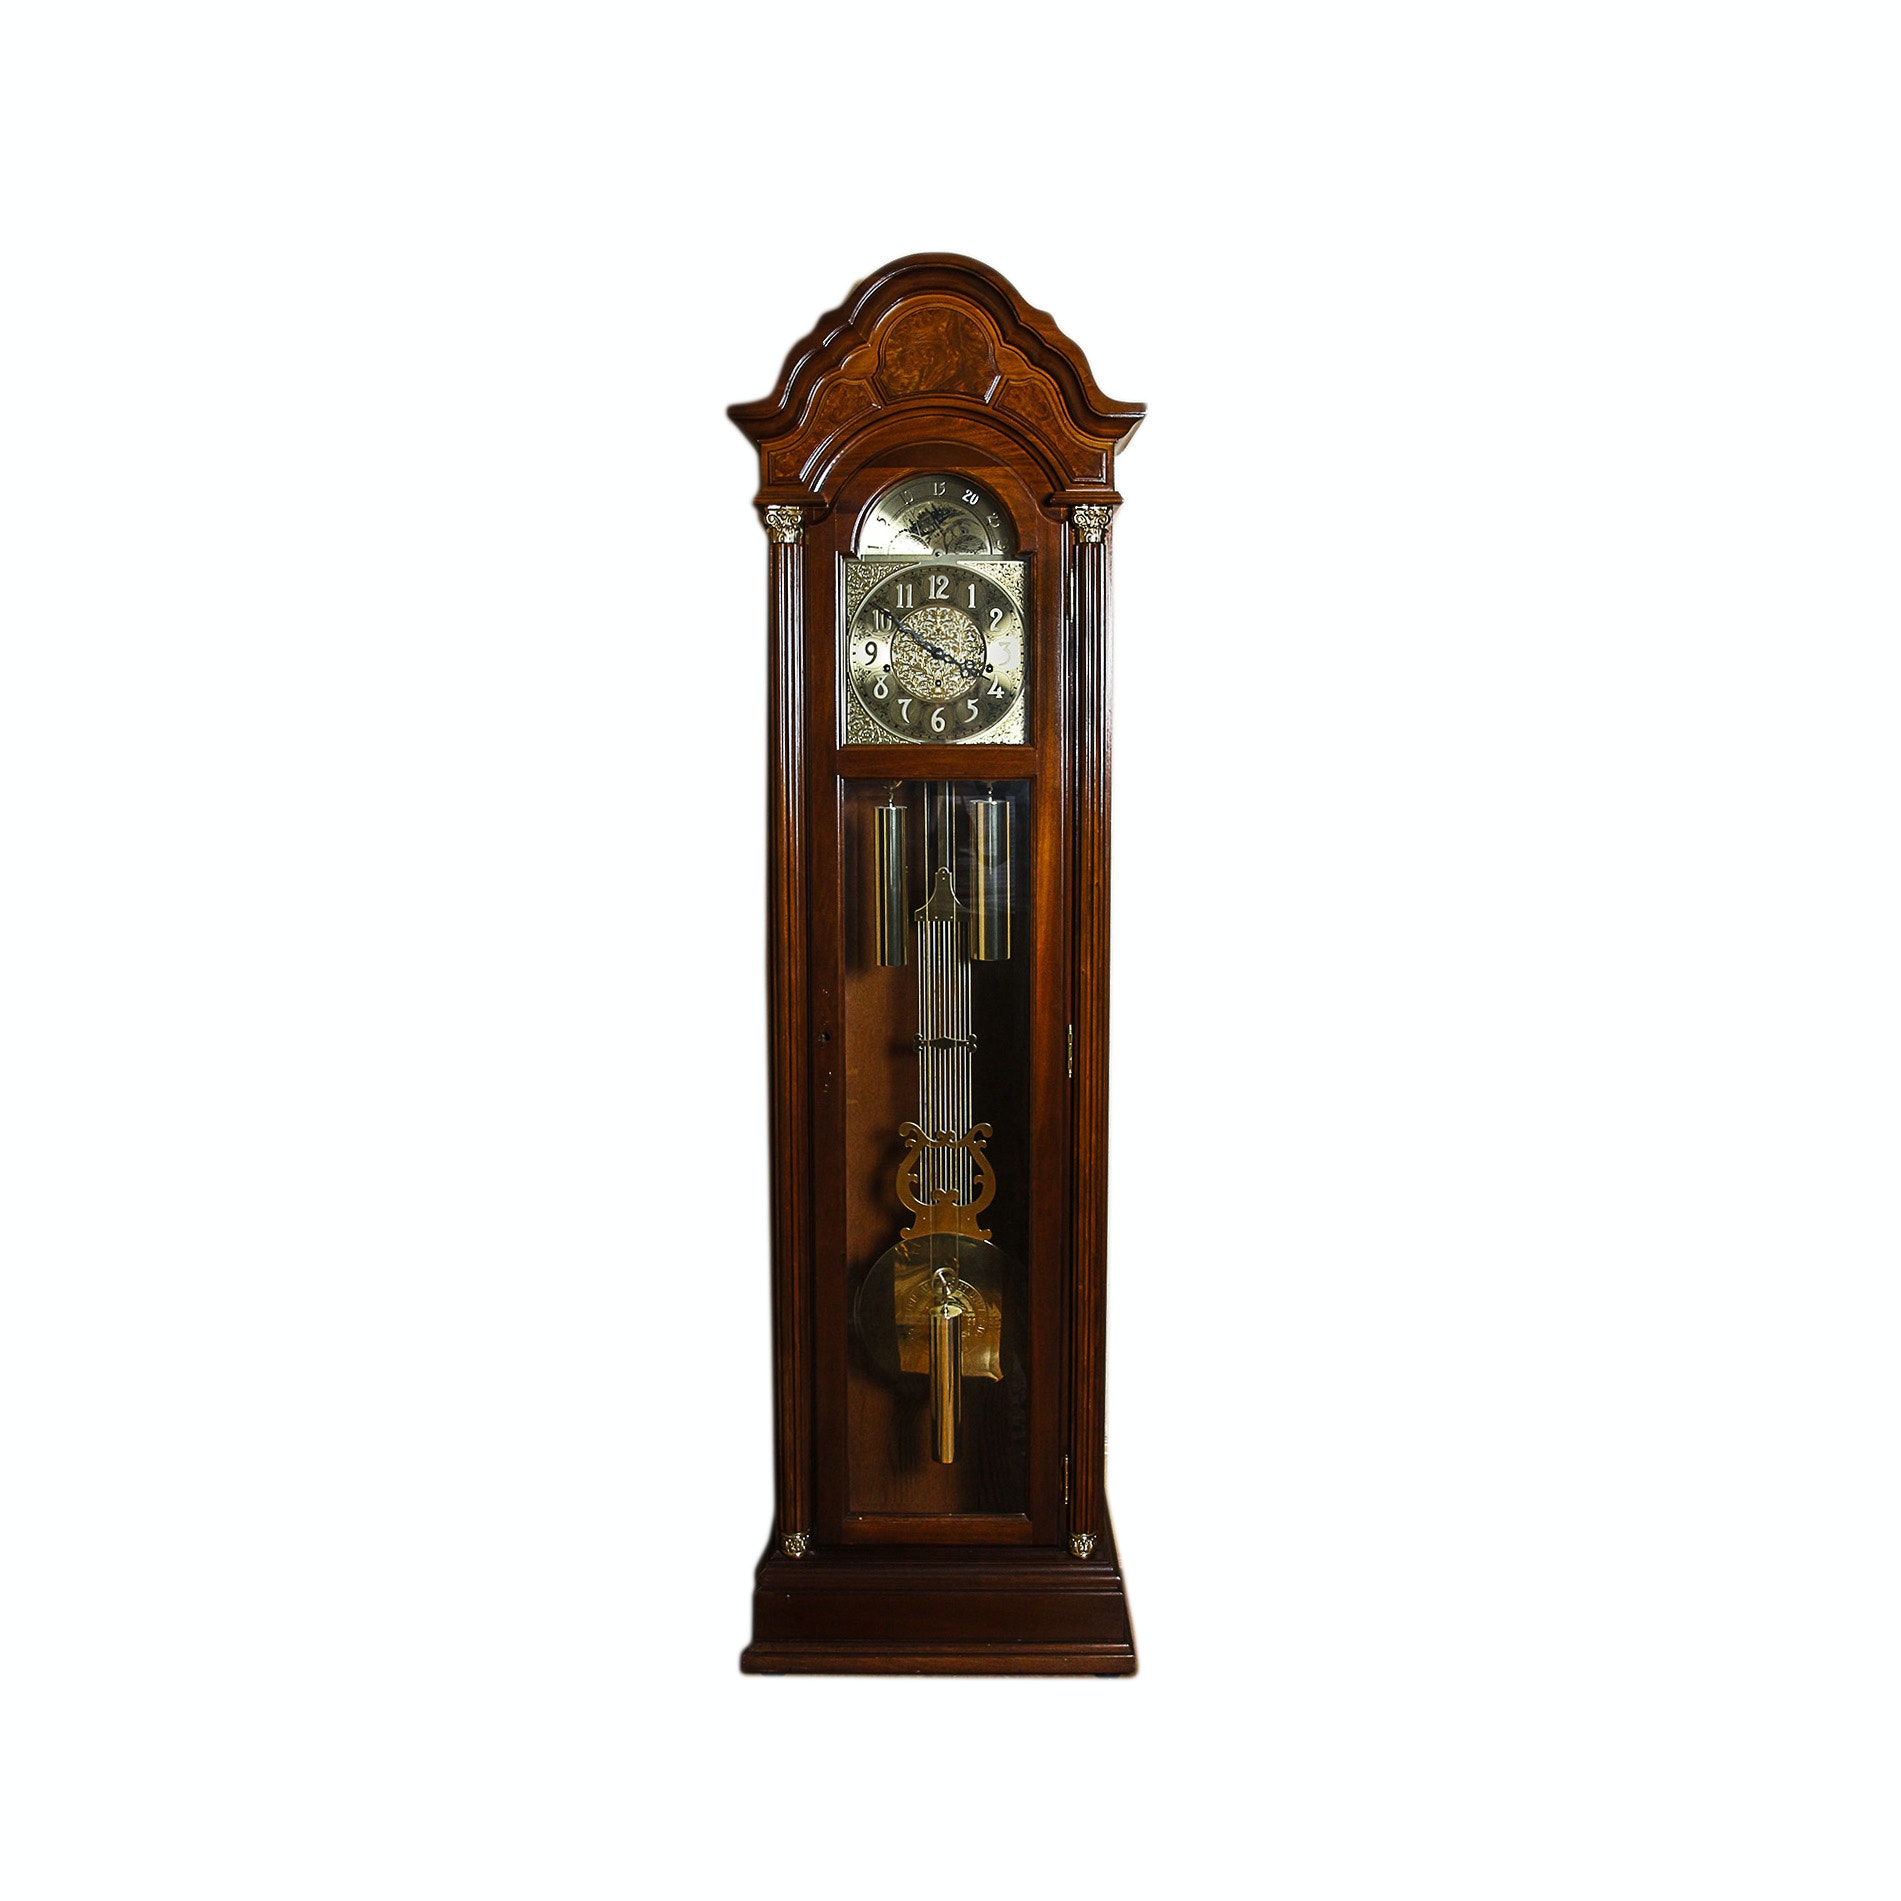 Colonial Style Grandfather Clock with Moon Phase Dial